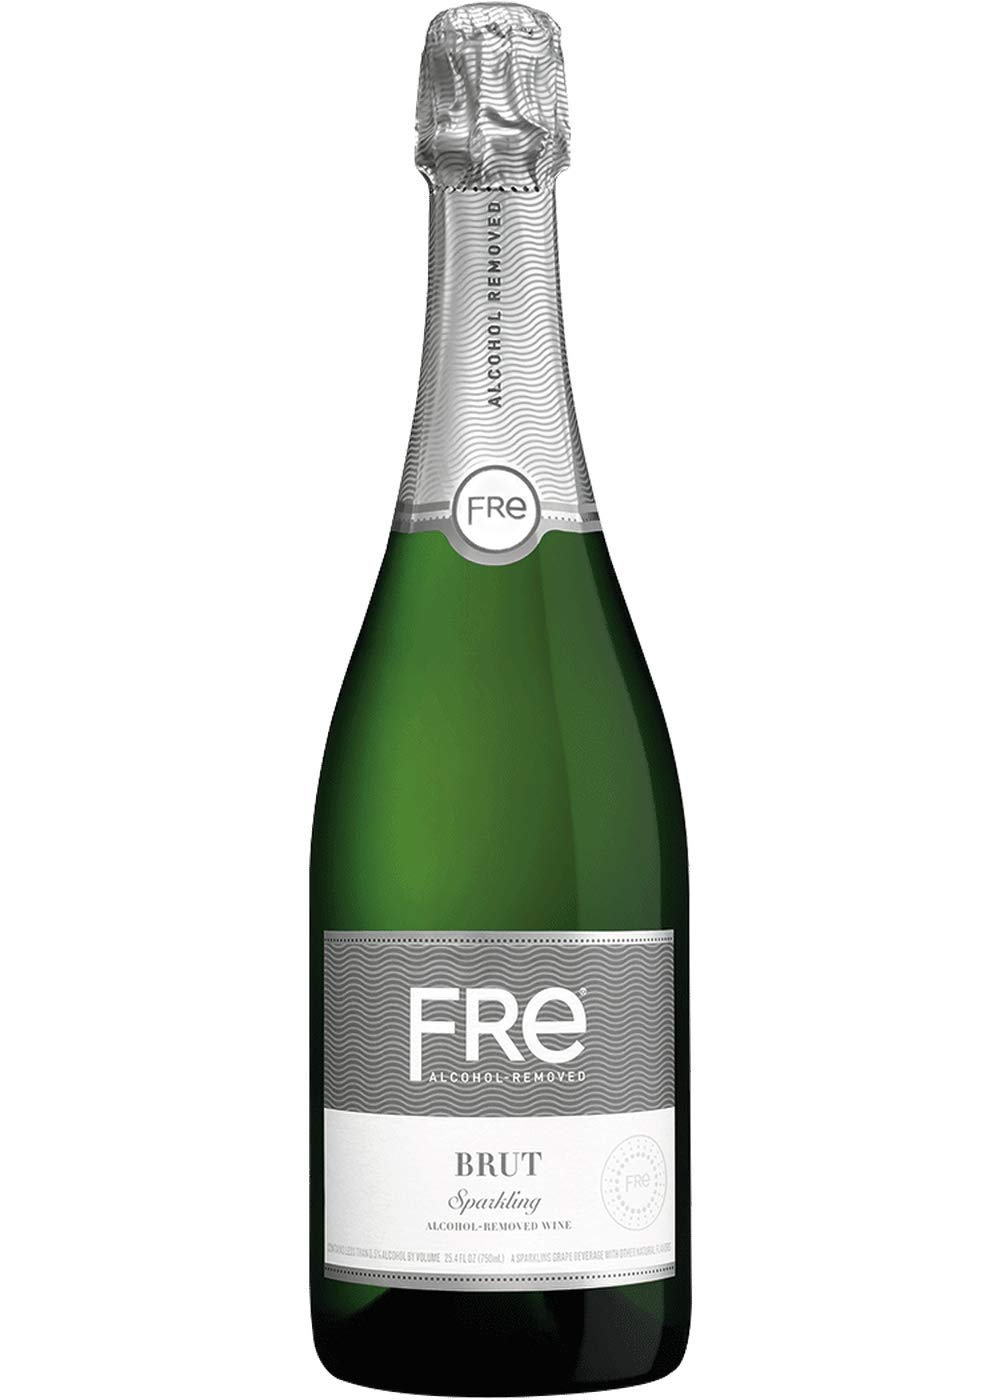 Sutter Home FRE Brut Non-Alcoholic Champagne & Sparkling Wine, Frustration-Free Packaging - 750 Ml | Pack of 6 by Sutter Home